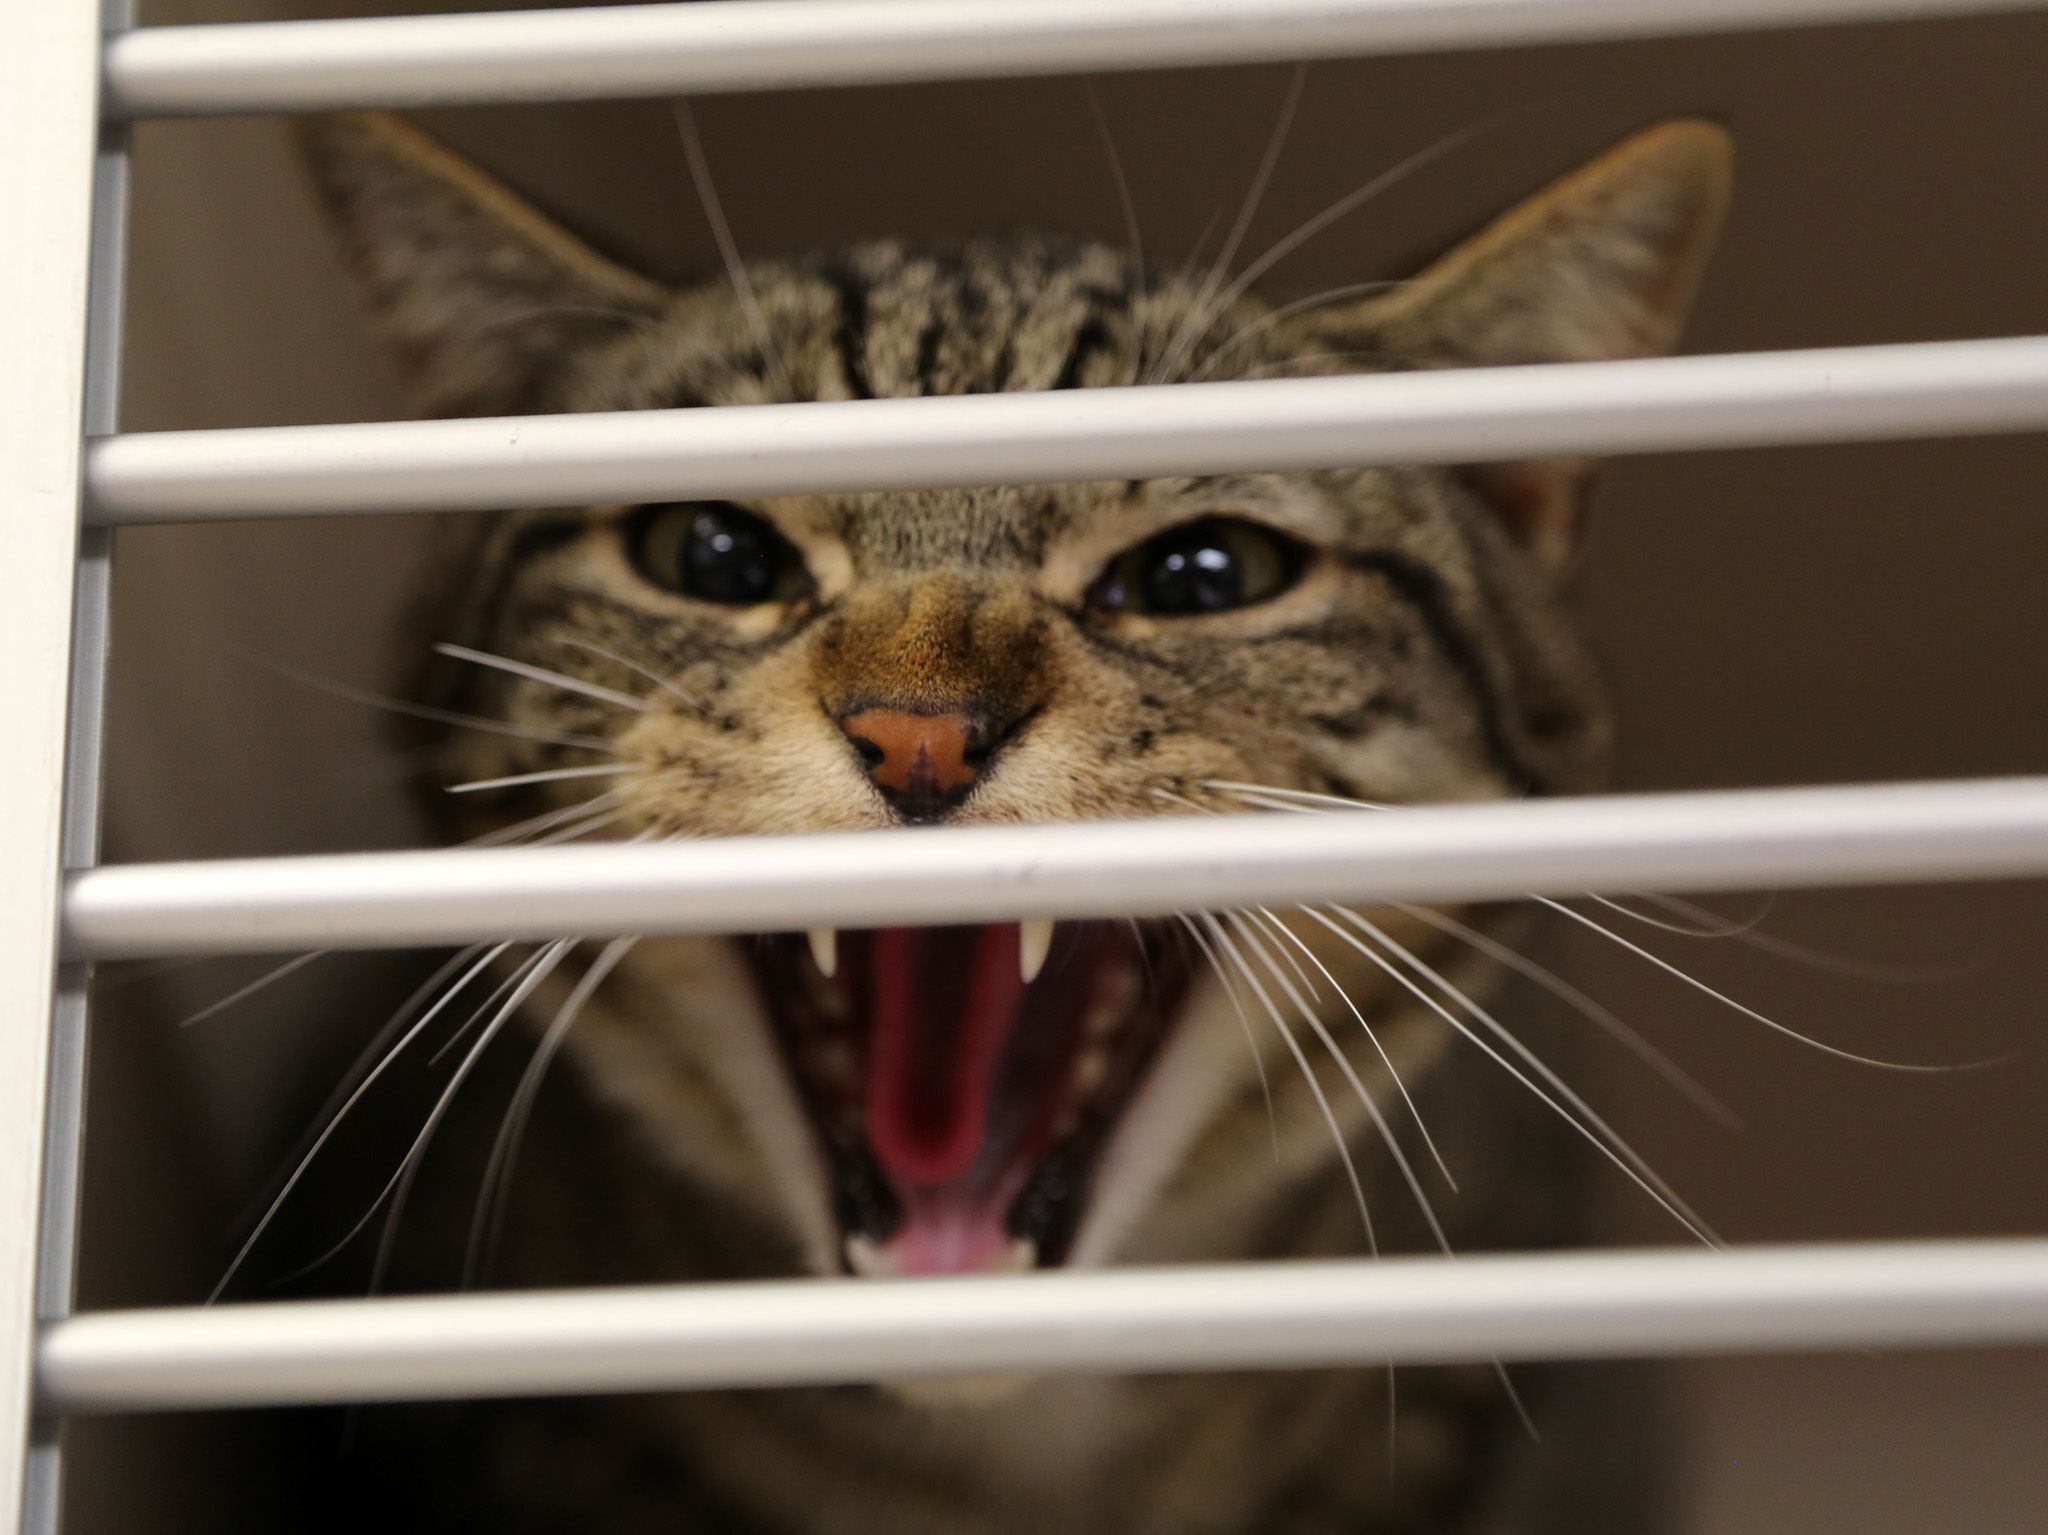 Pueblo, CO:  Fanny the cat is a little upset after being rescued from a swamp cooler. This image... [Photo of the day - November 2019]